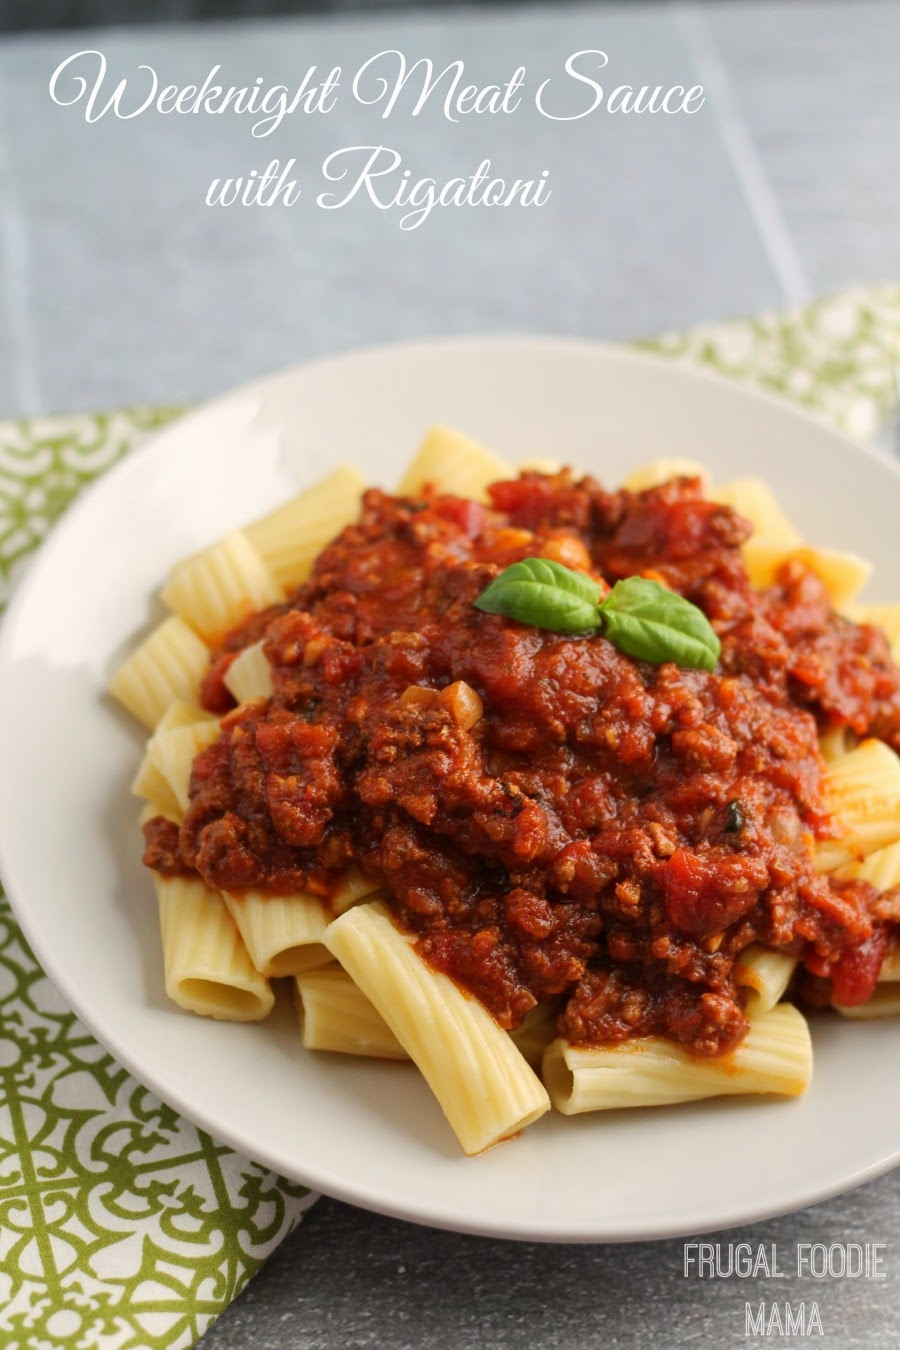 This rich & hearty Weeknight Meat Sauce with Rigatoni simmers away all day in your slow cooker & is ready to serve when you get home.